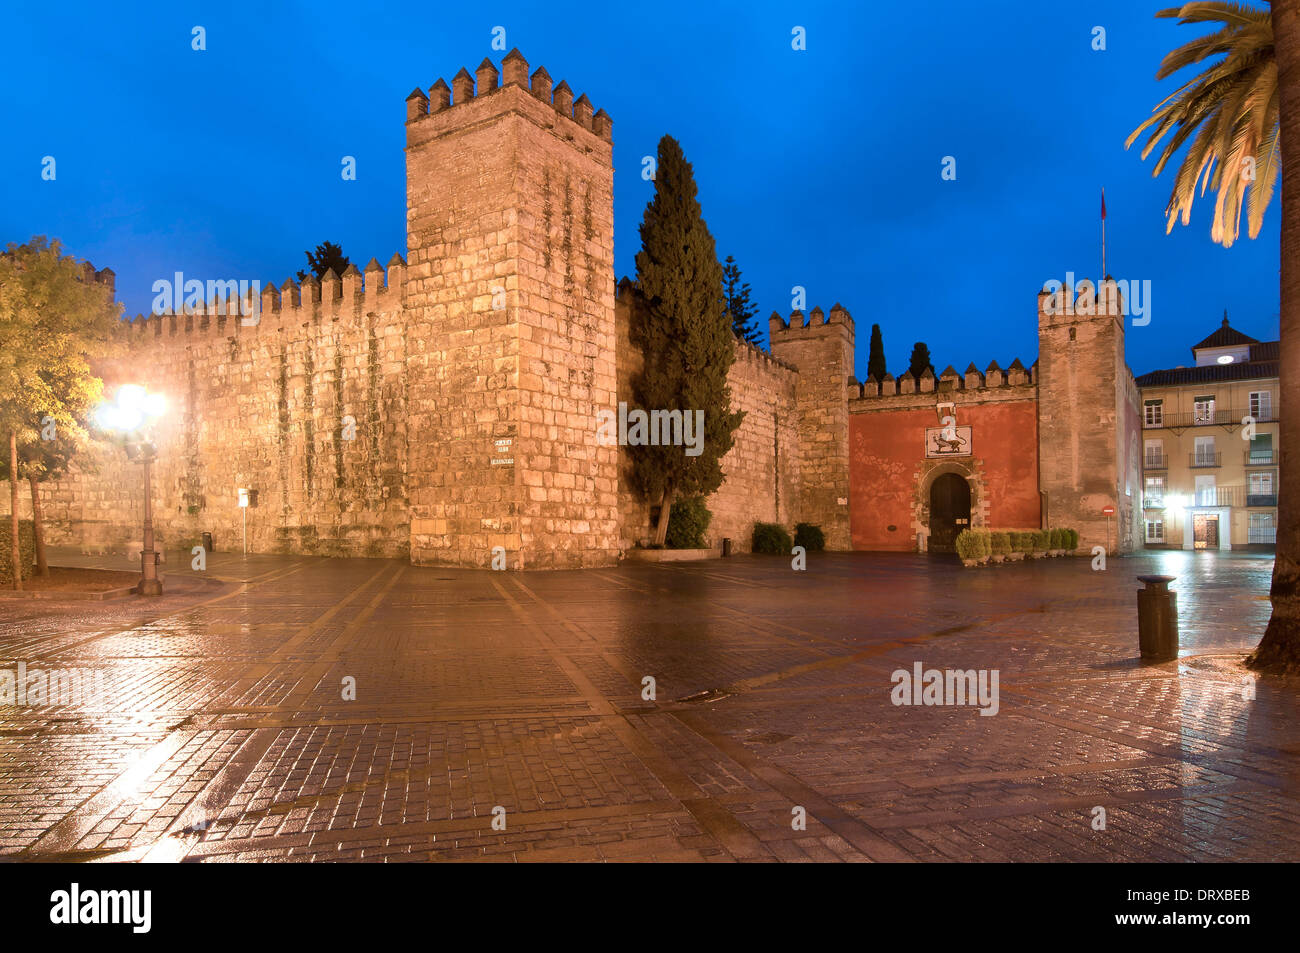 Walls of the Royal Alcazar, Seville, Region of Andalusia, Spain, Europe - Stock Image